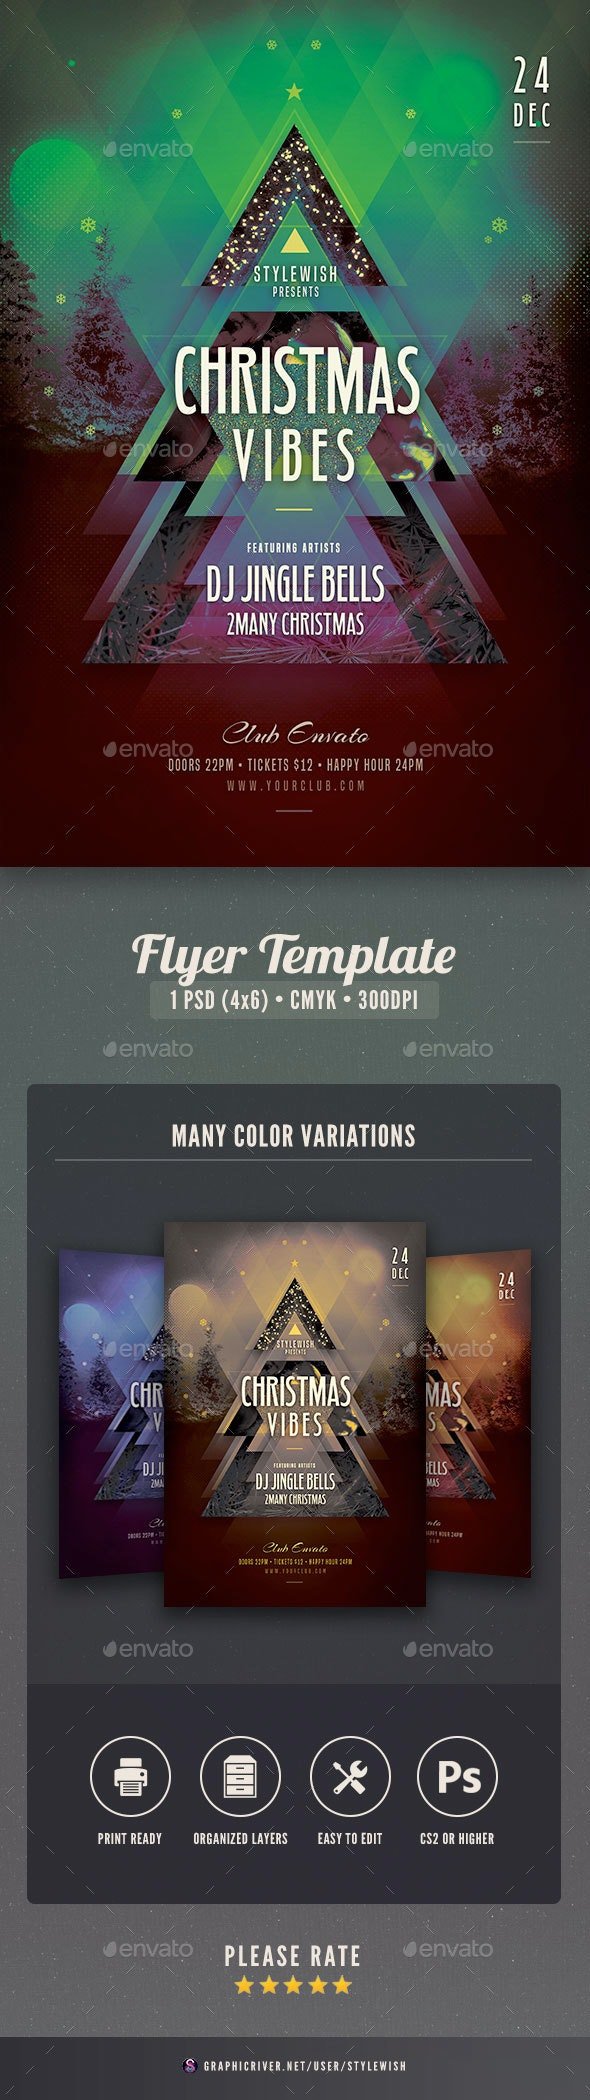 Christmas Vibes Flyer Template - Clubs & Parties Events